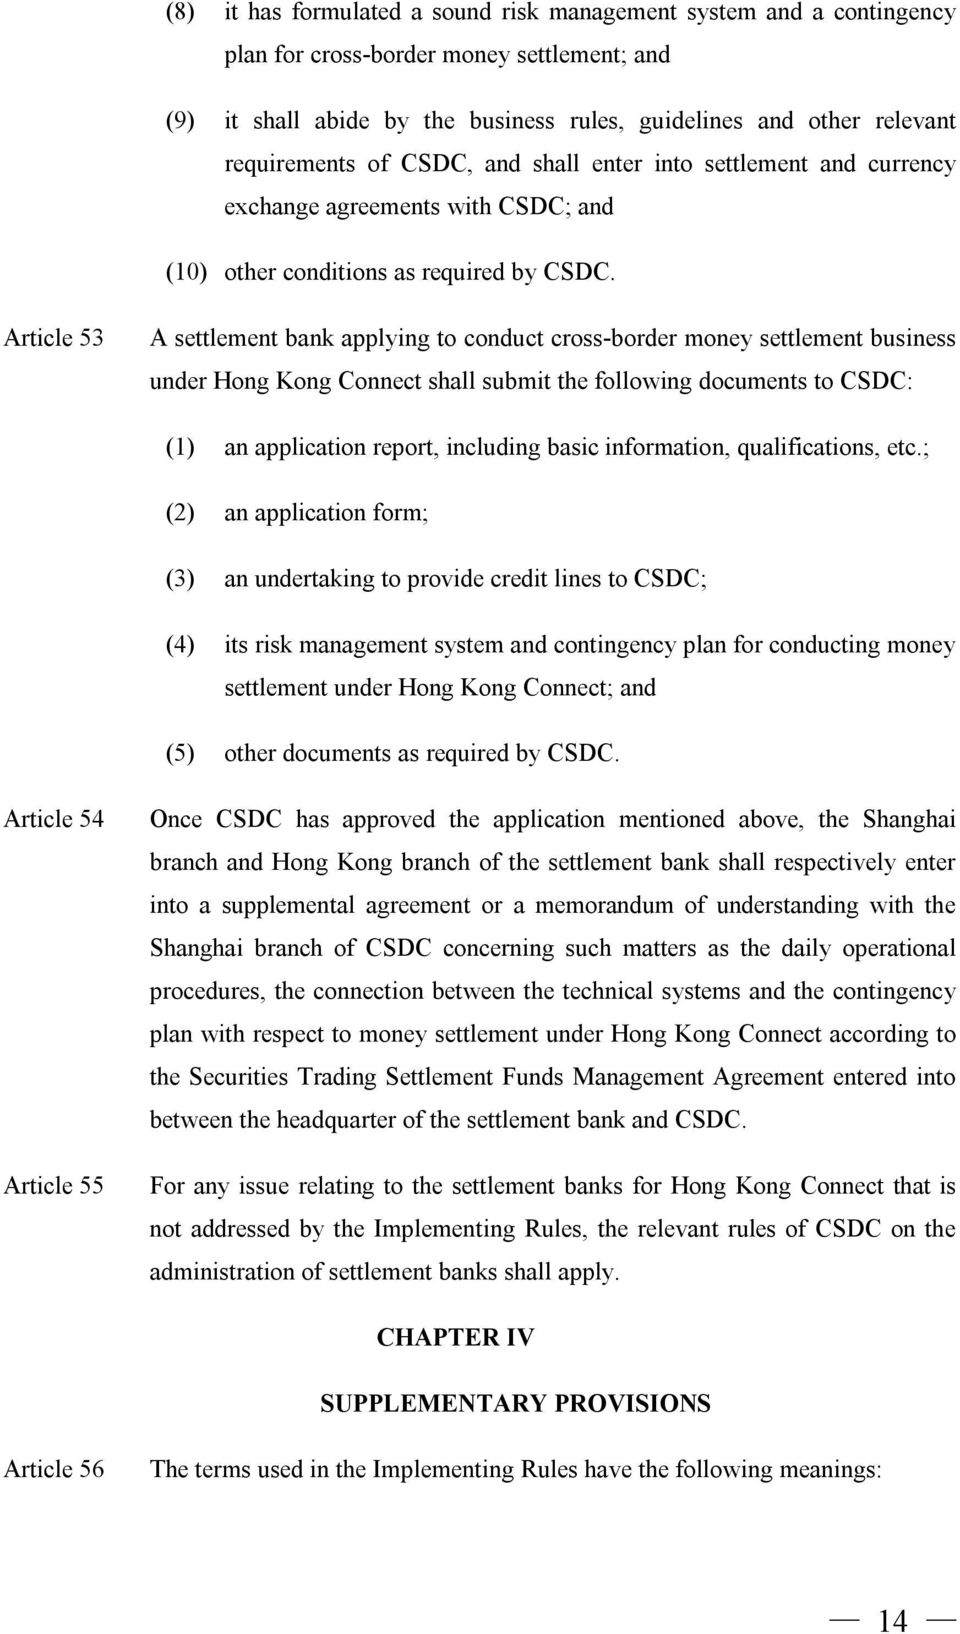 Article 53 A settlement bank applying to conduct cross-border money settlement business under Hong Kong Connect shall submit the following documents to CSDC: (1) an application report, including